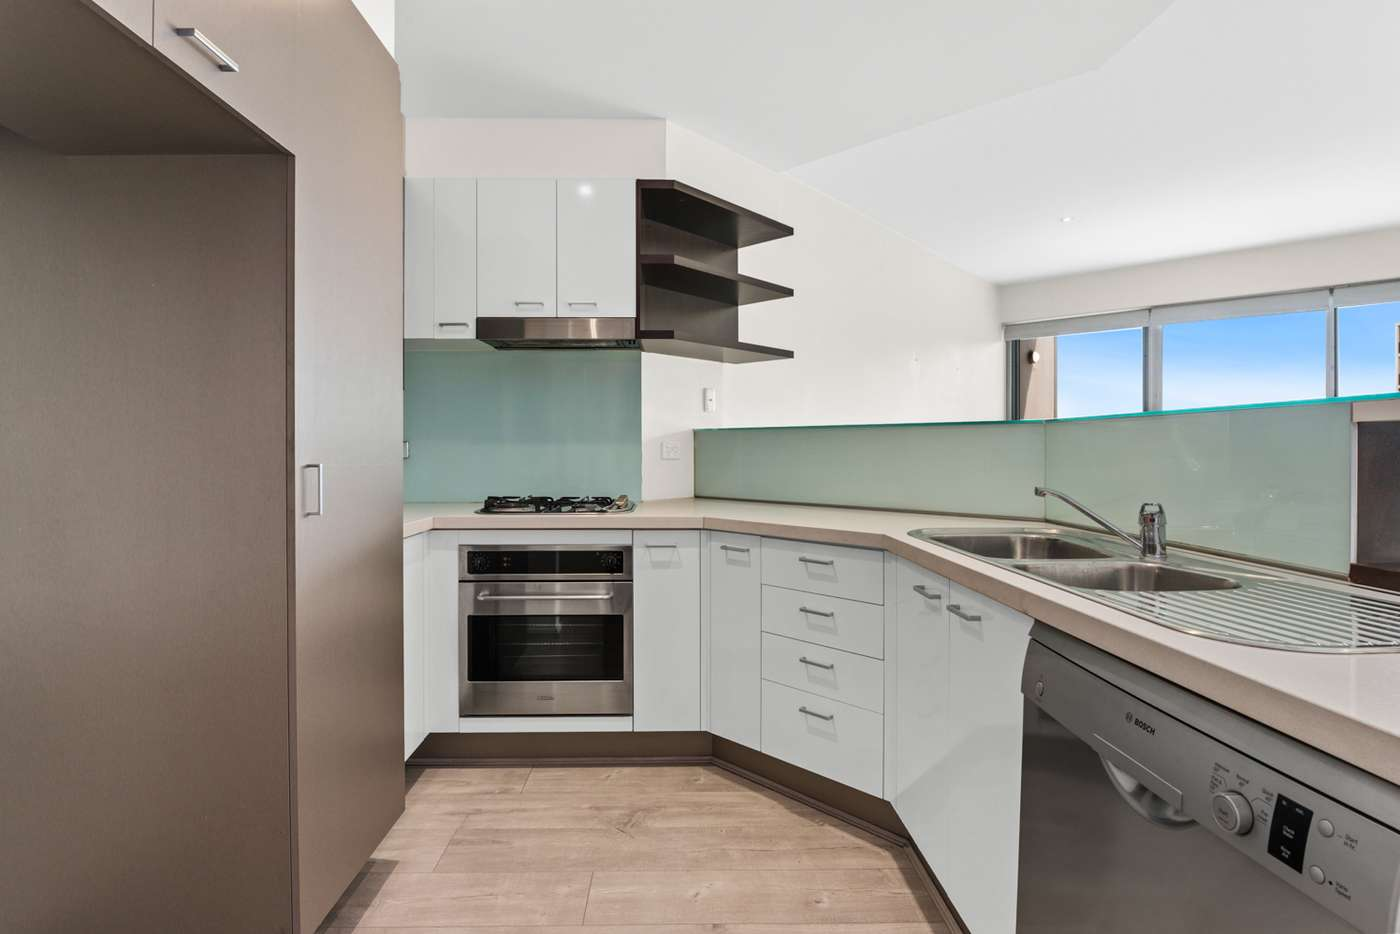 Seventh view of Homely apartment listing, 309/242 Glen Huntly Road, Elsternwick VIC 3185